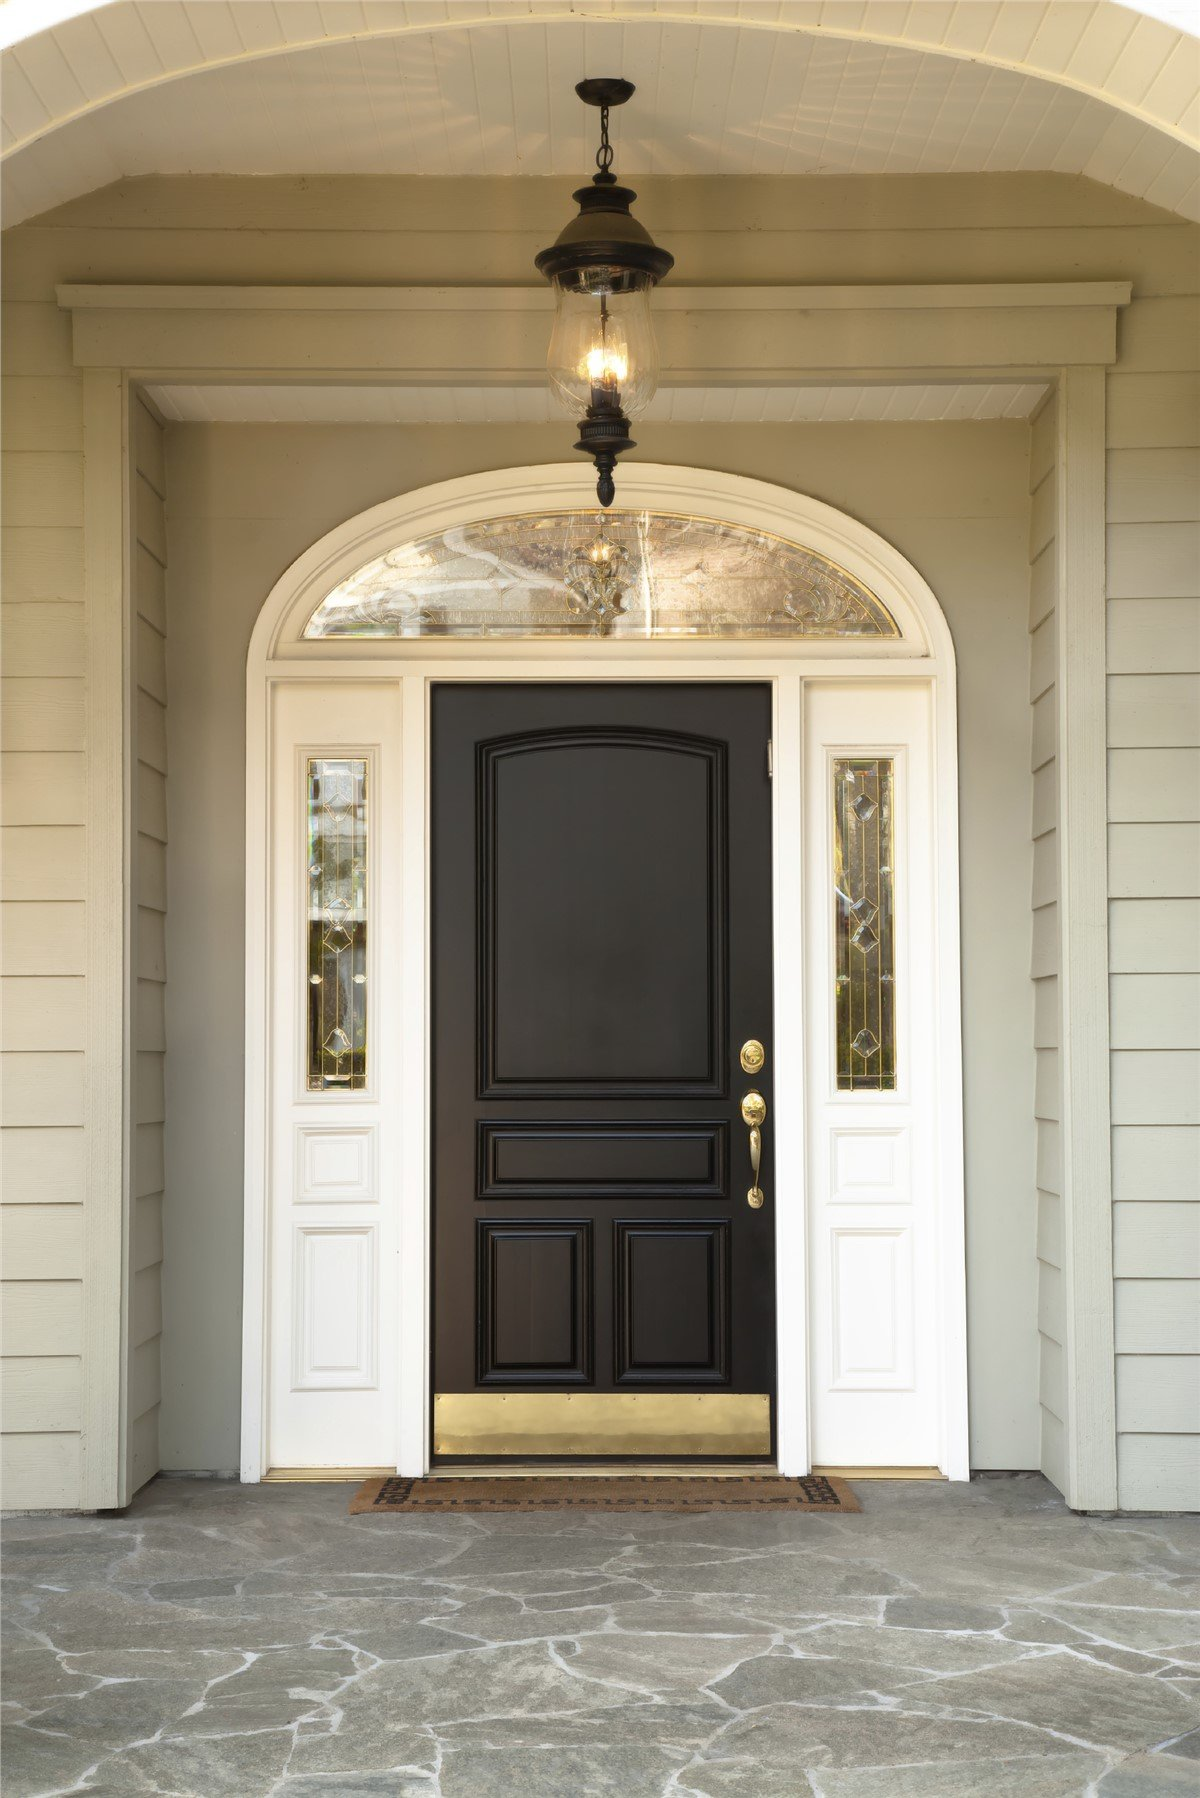 What Kind Of Paint Do You Use On A Fiberglass Door Newpro